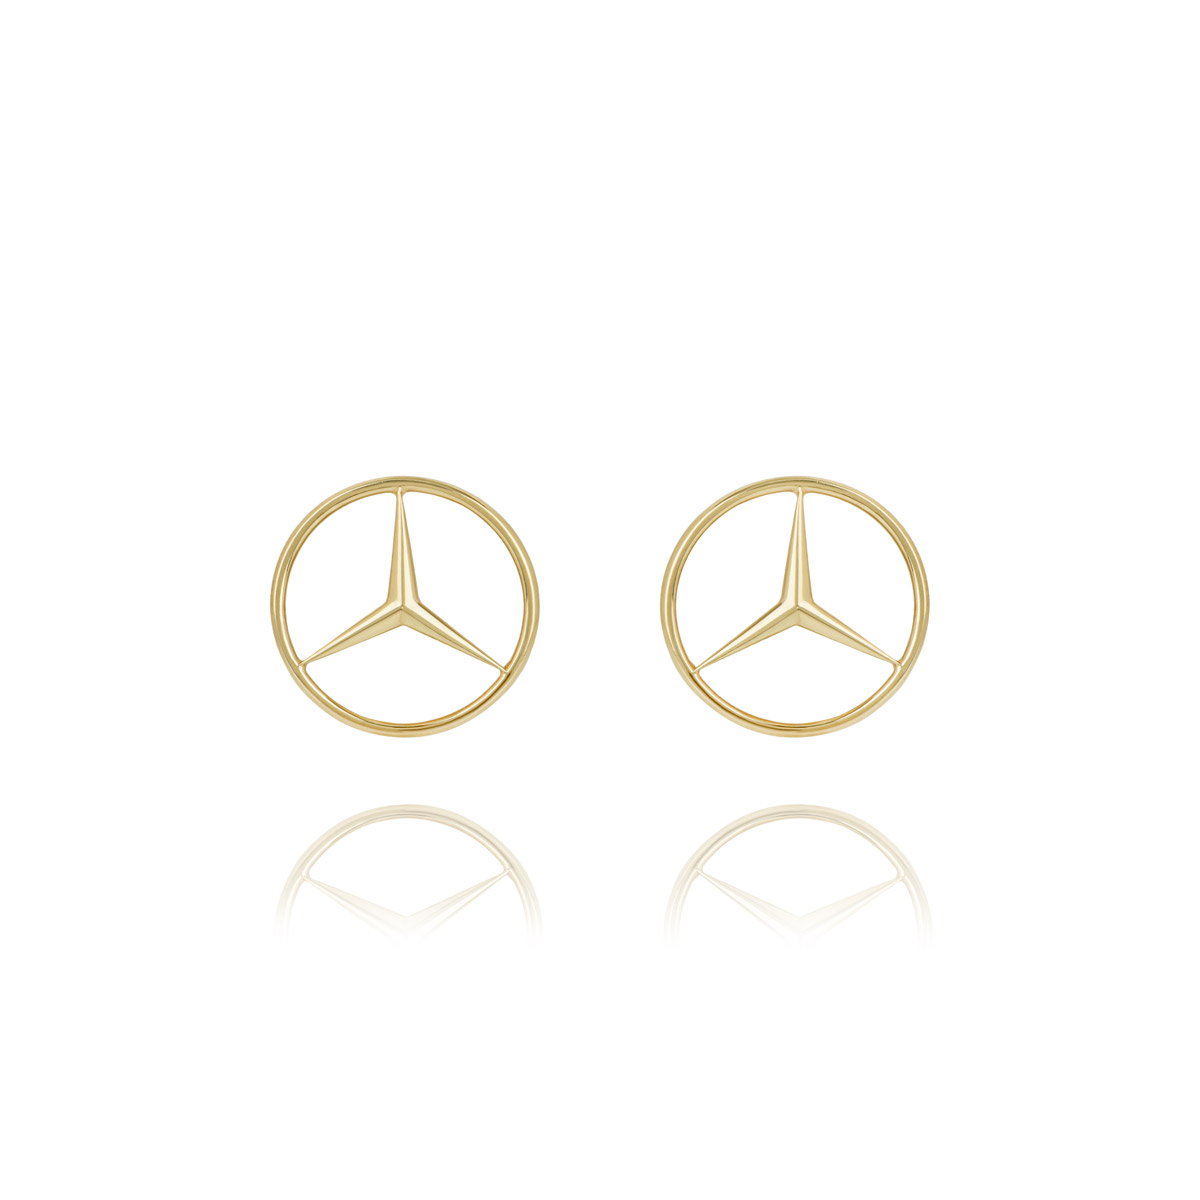 18k Mercedes Benz Emblem Cufflinks